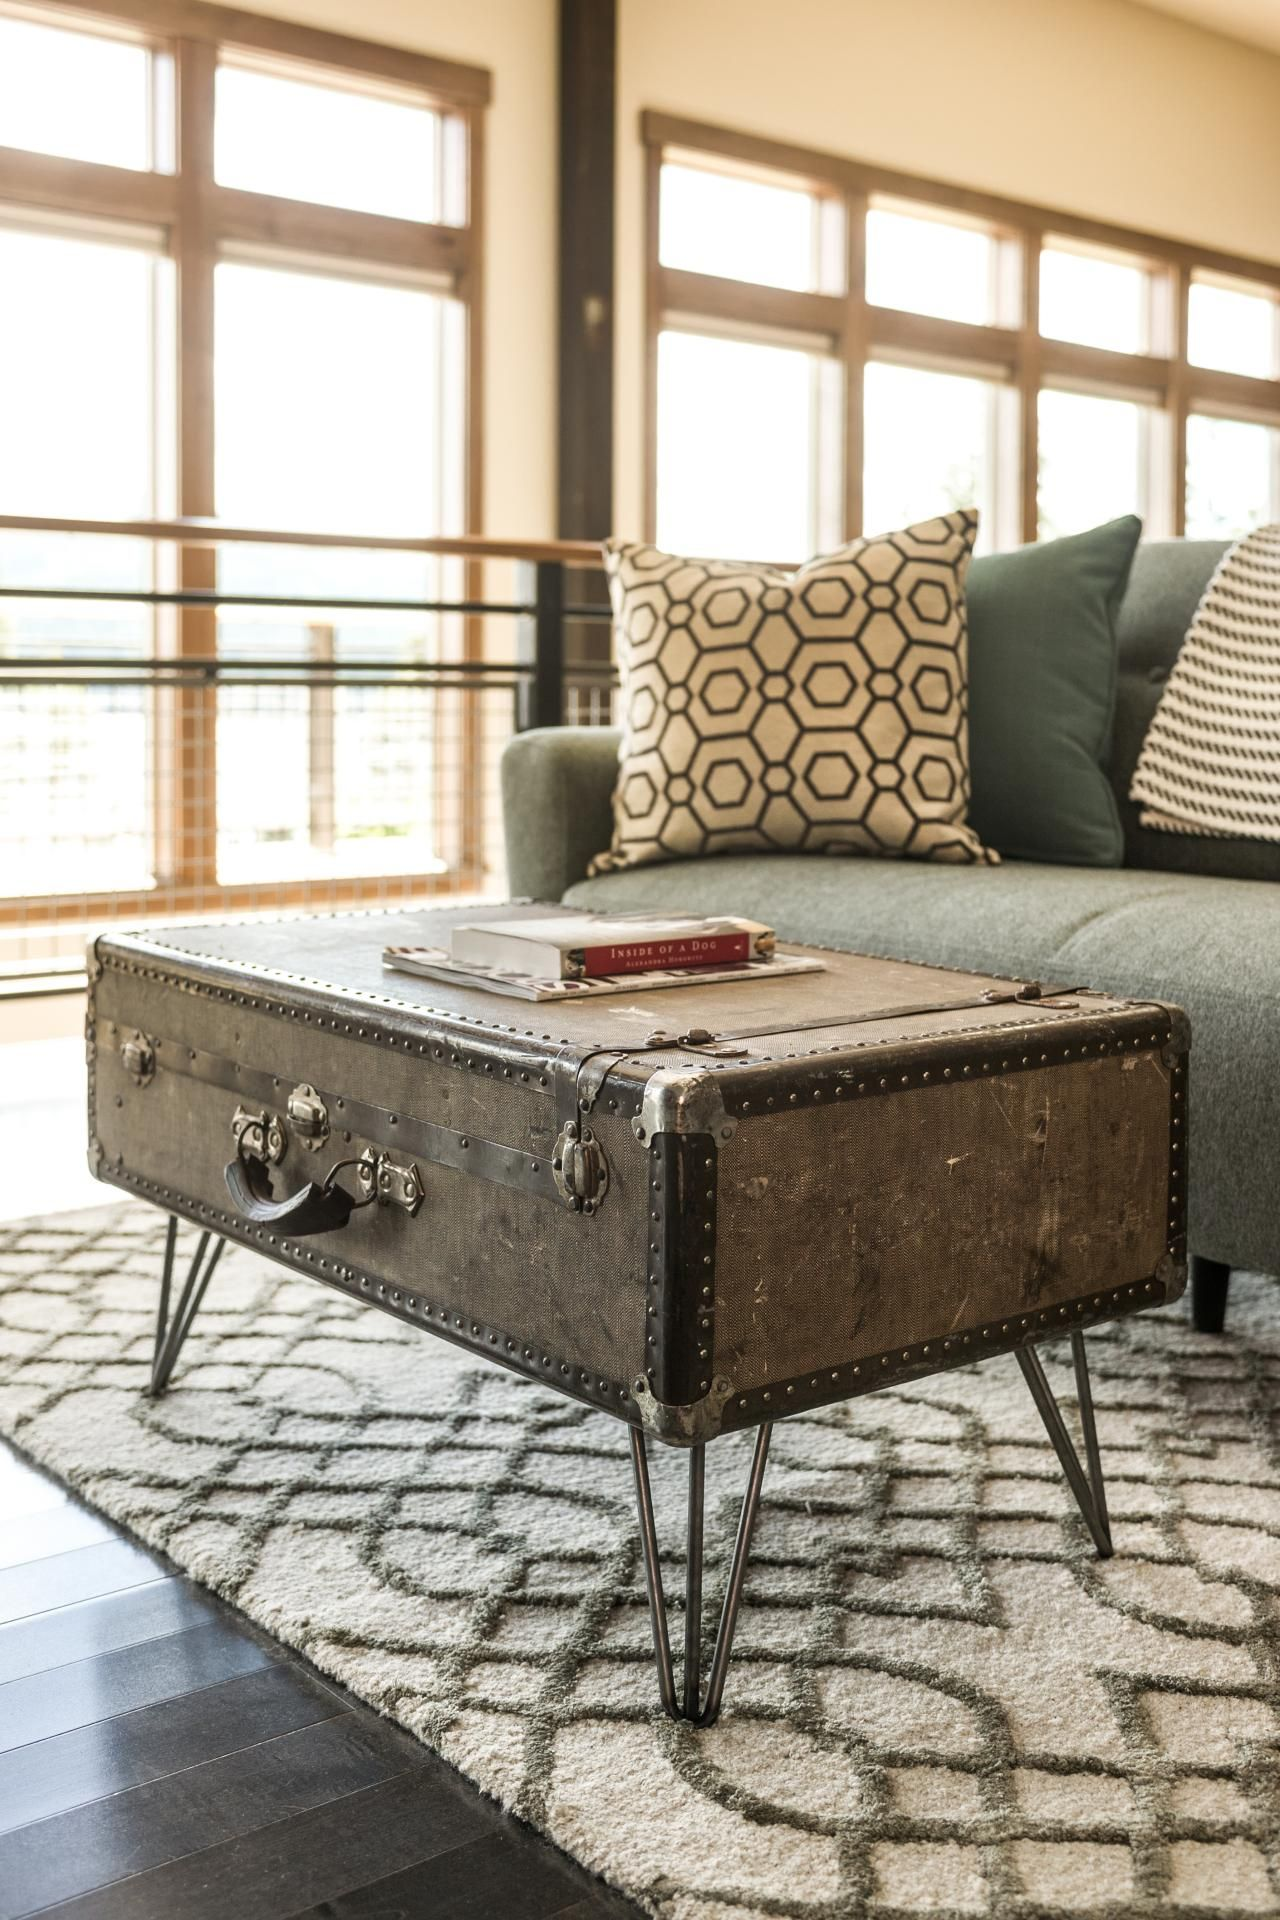 A Custom Coffee Table Made Of Vintage Suitcase Is Great Way To Make Fun Statement And Show Off Your Diy Skills From The Experts At Diynetwork